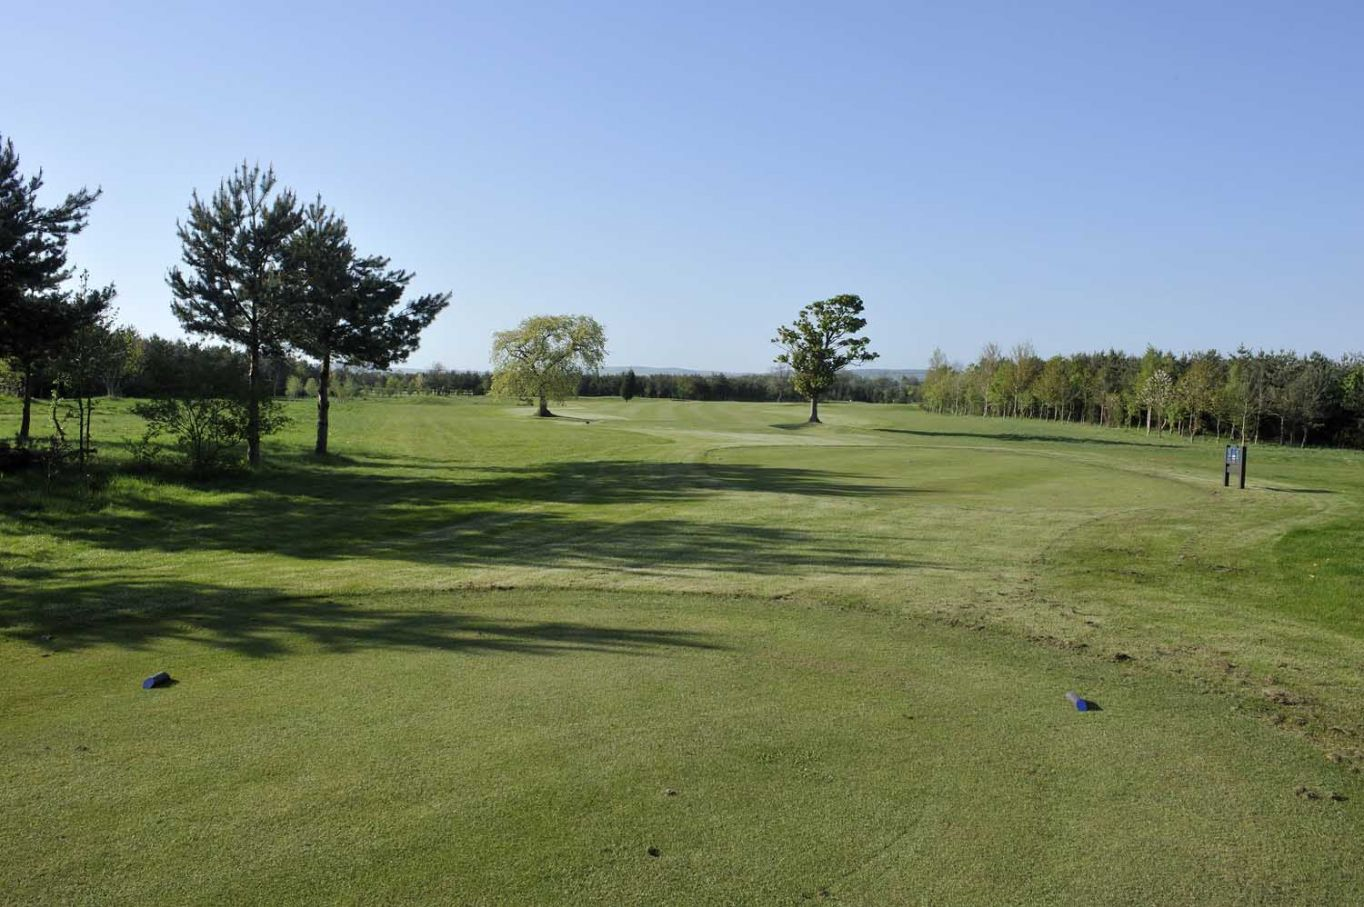 Knoxville Municipal Golf Course